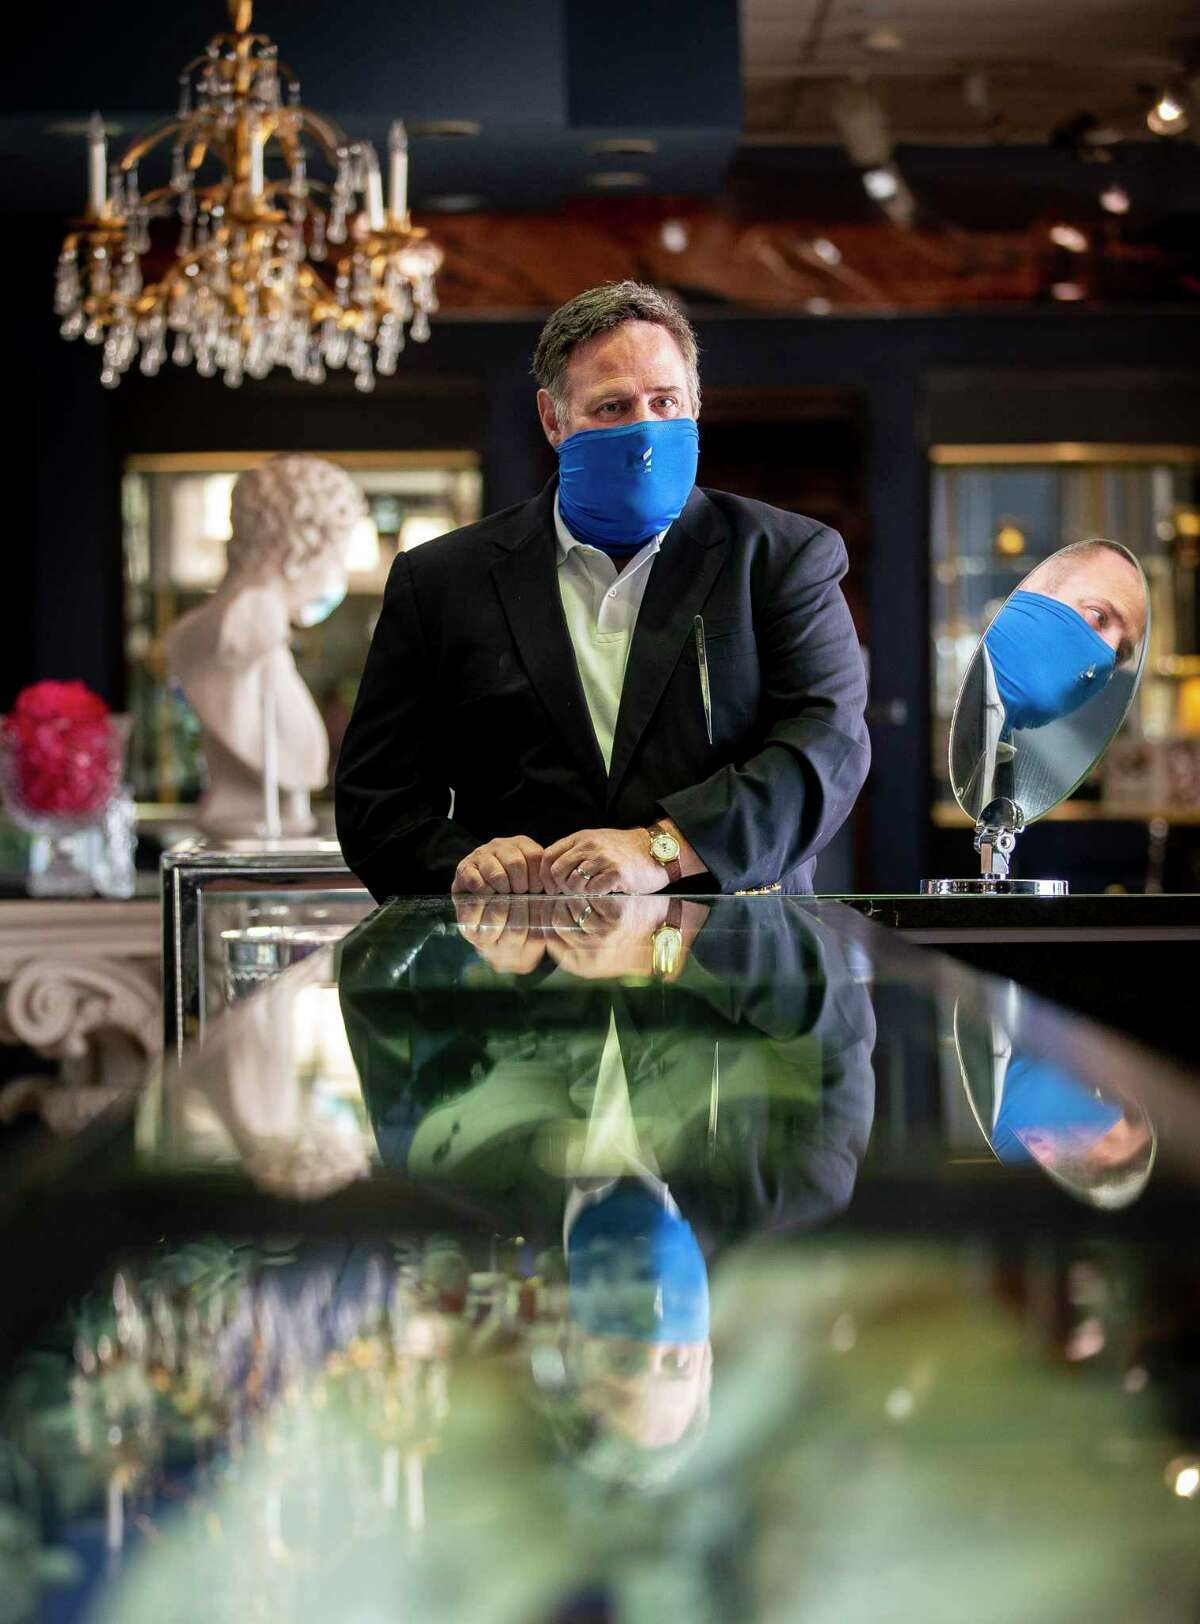 Rex Solomon, owner of Houston Jewelry, at the store Wednesday, Oct. 14, 2020, in Houston.